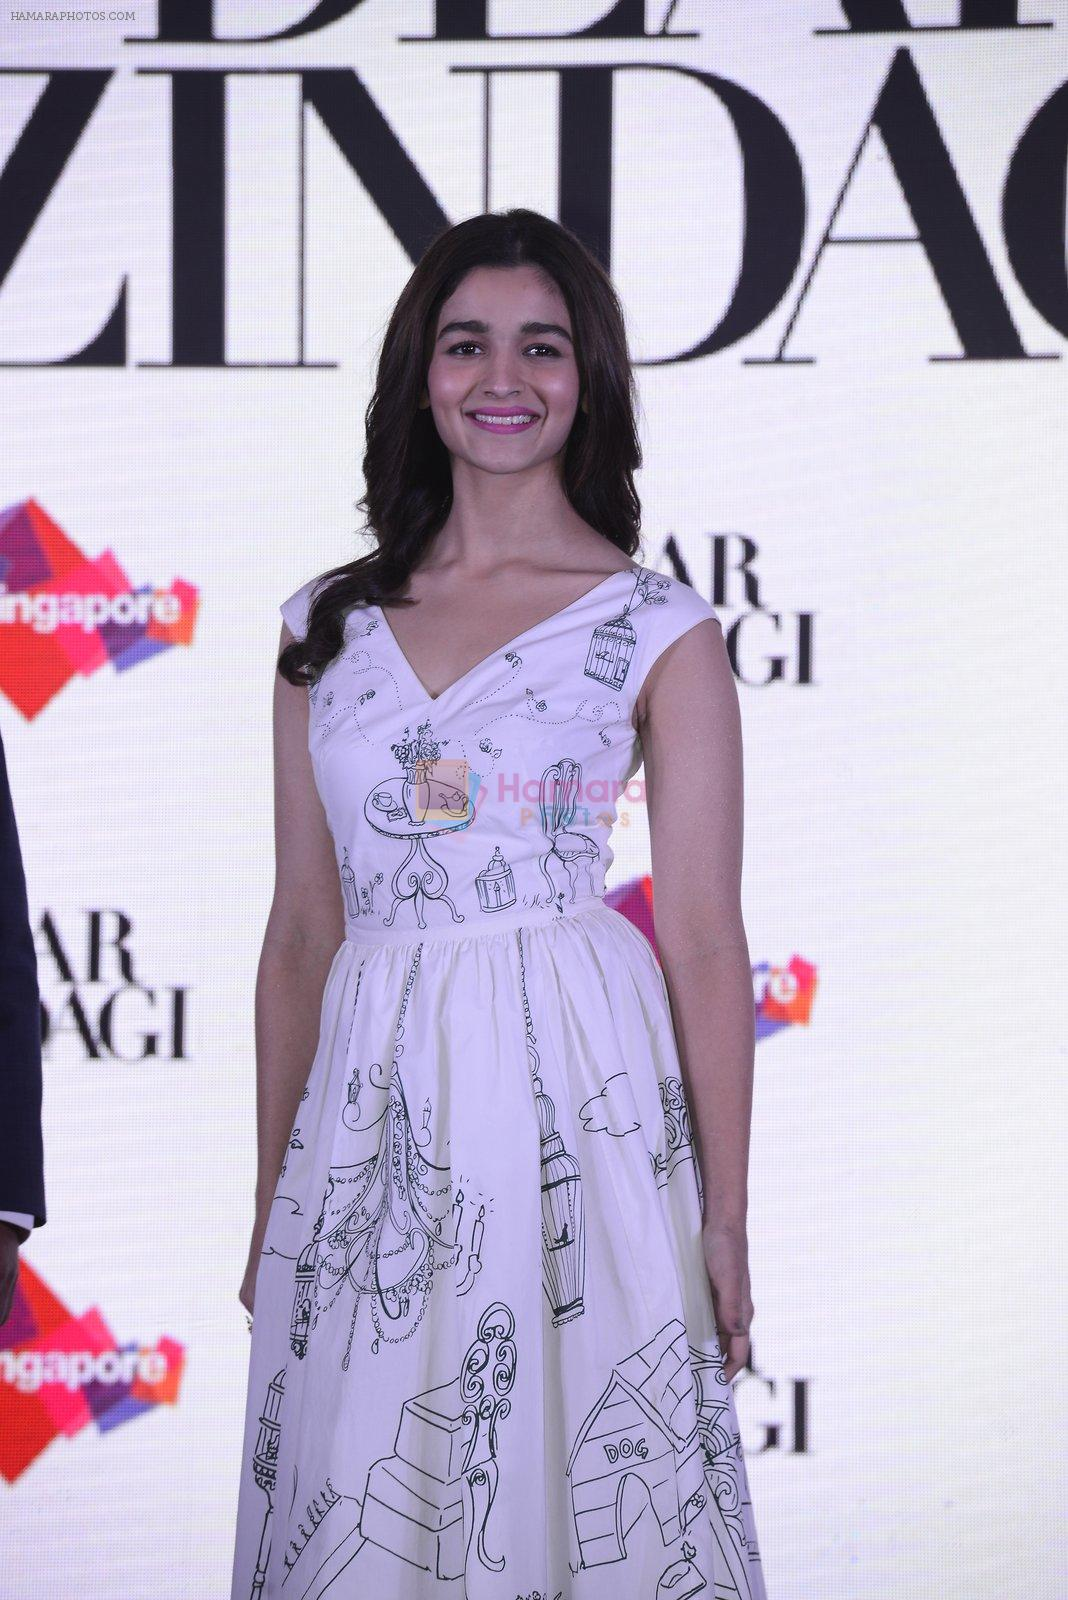 Alia Bhatt at Singapore tourism event on 25th Nov 2016